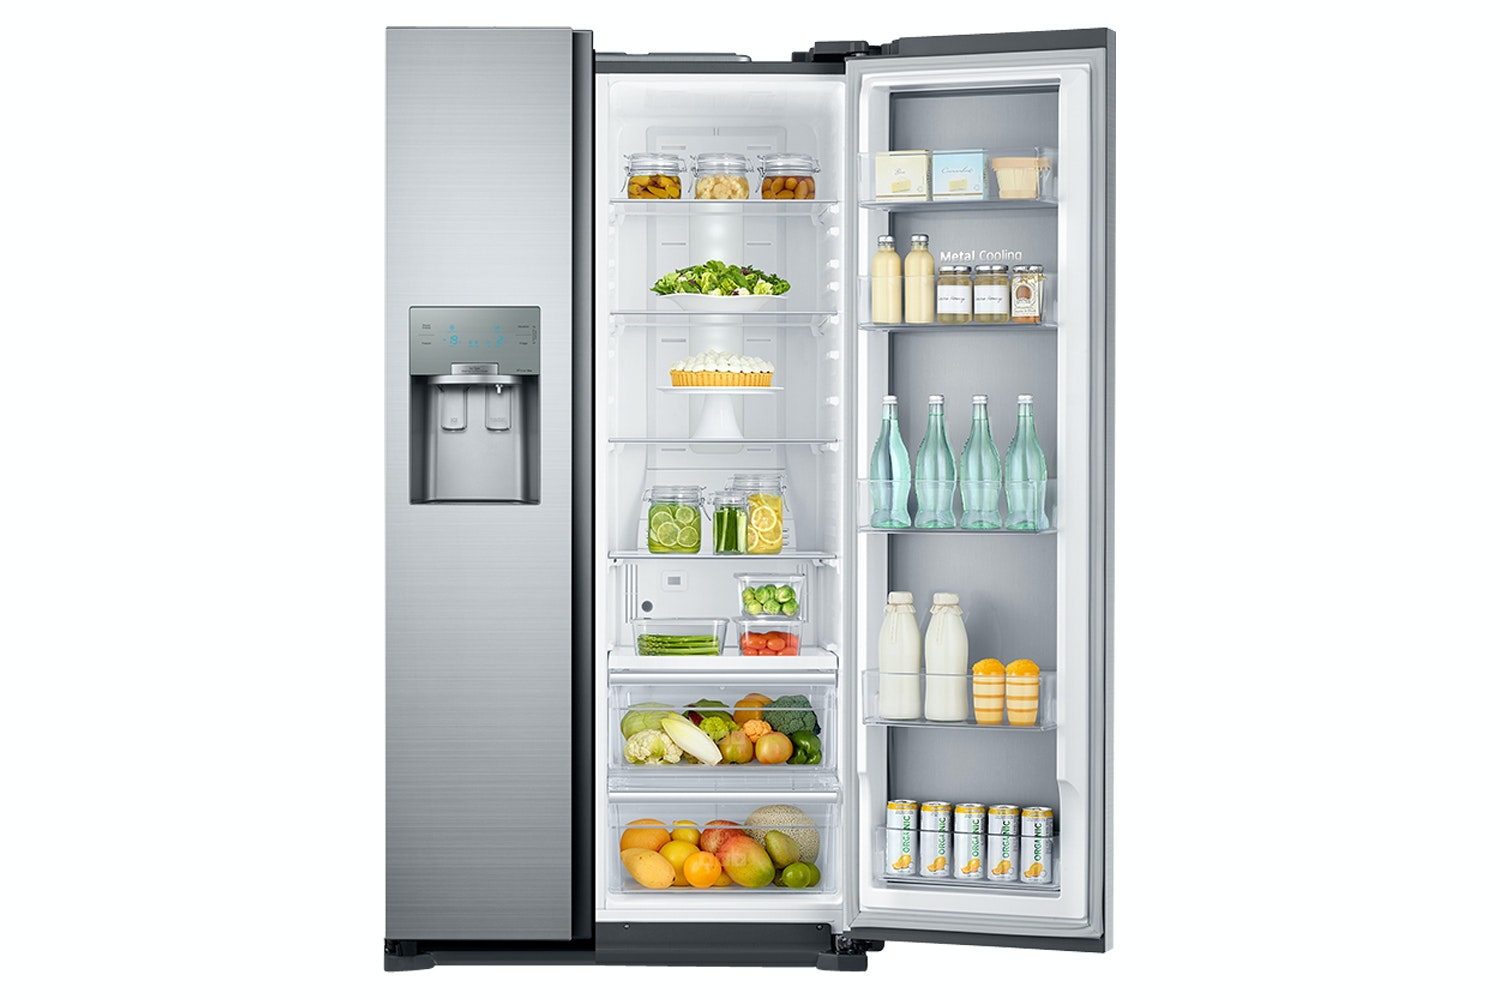 Samsung RH700 Series Side by Side Fridge Freezer | RH56J6917SL/EU